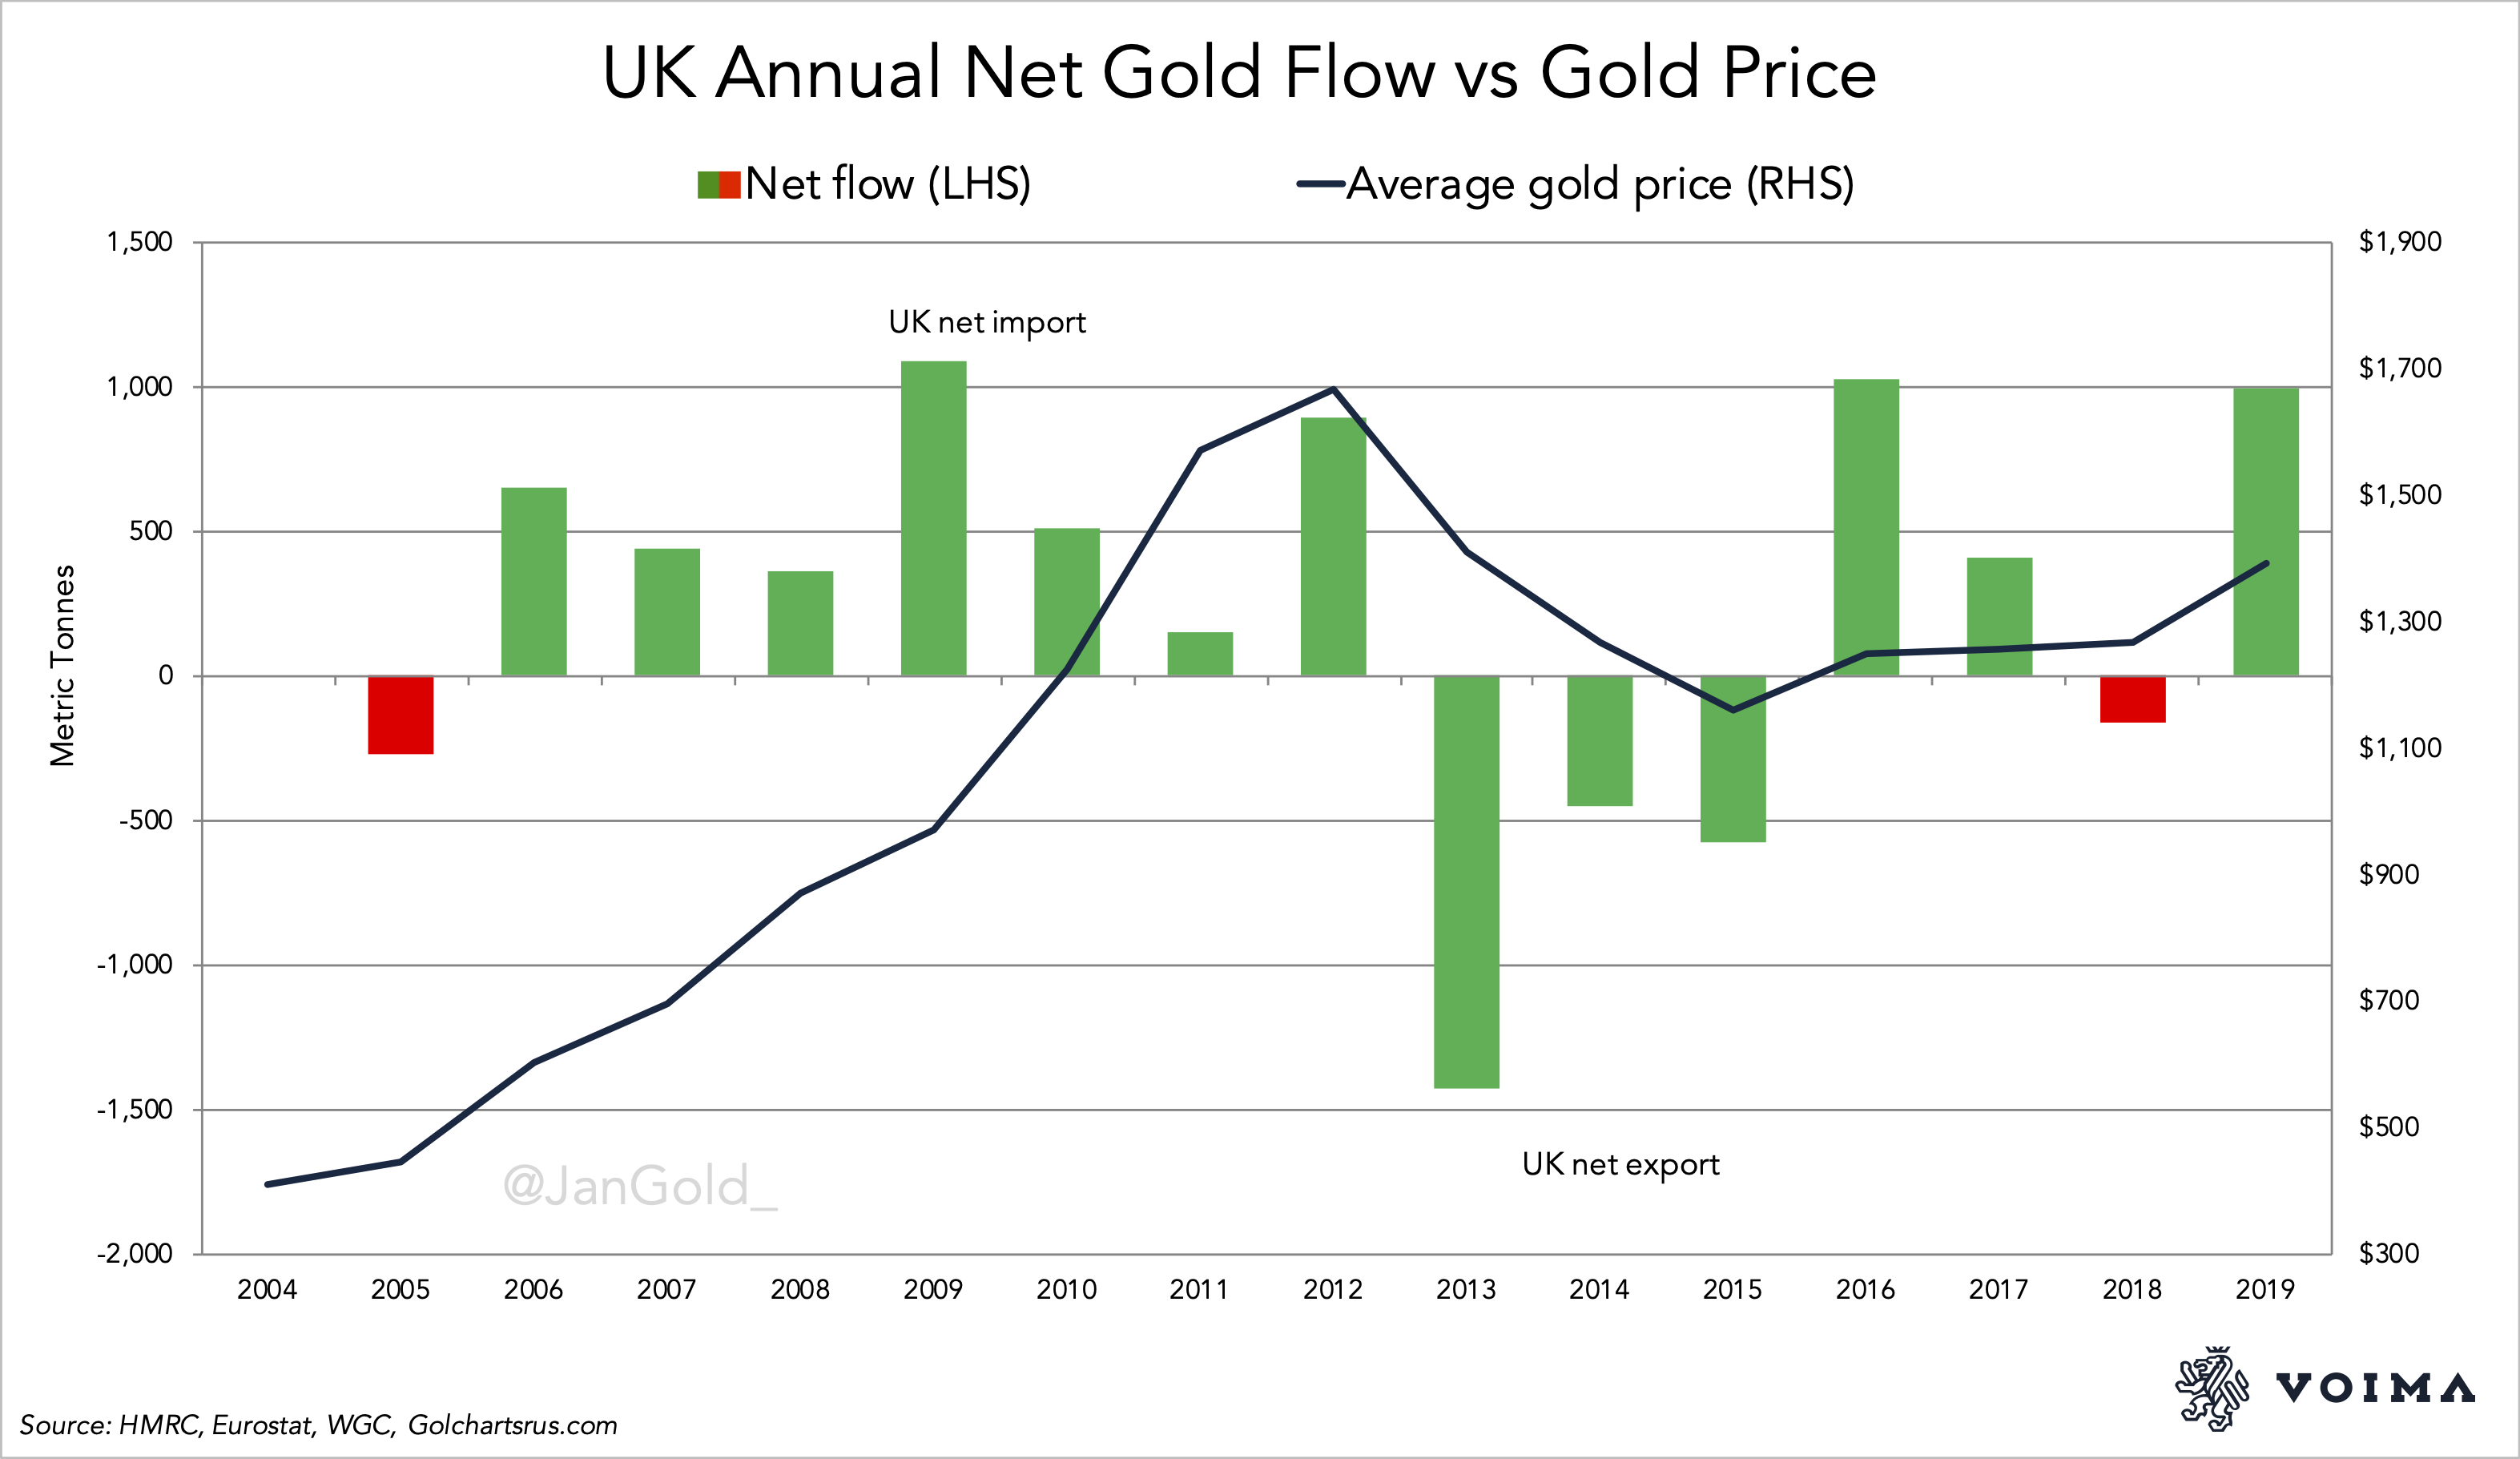 UK Annual Net Gold Flow vs Gold Price